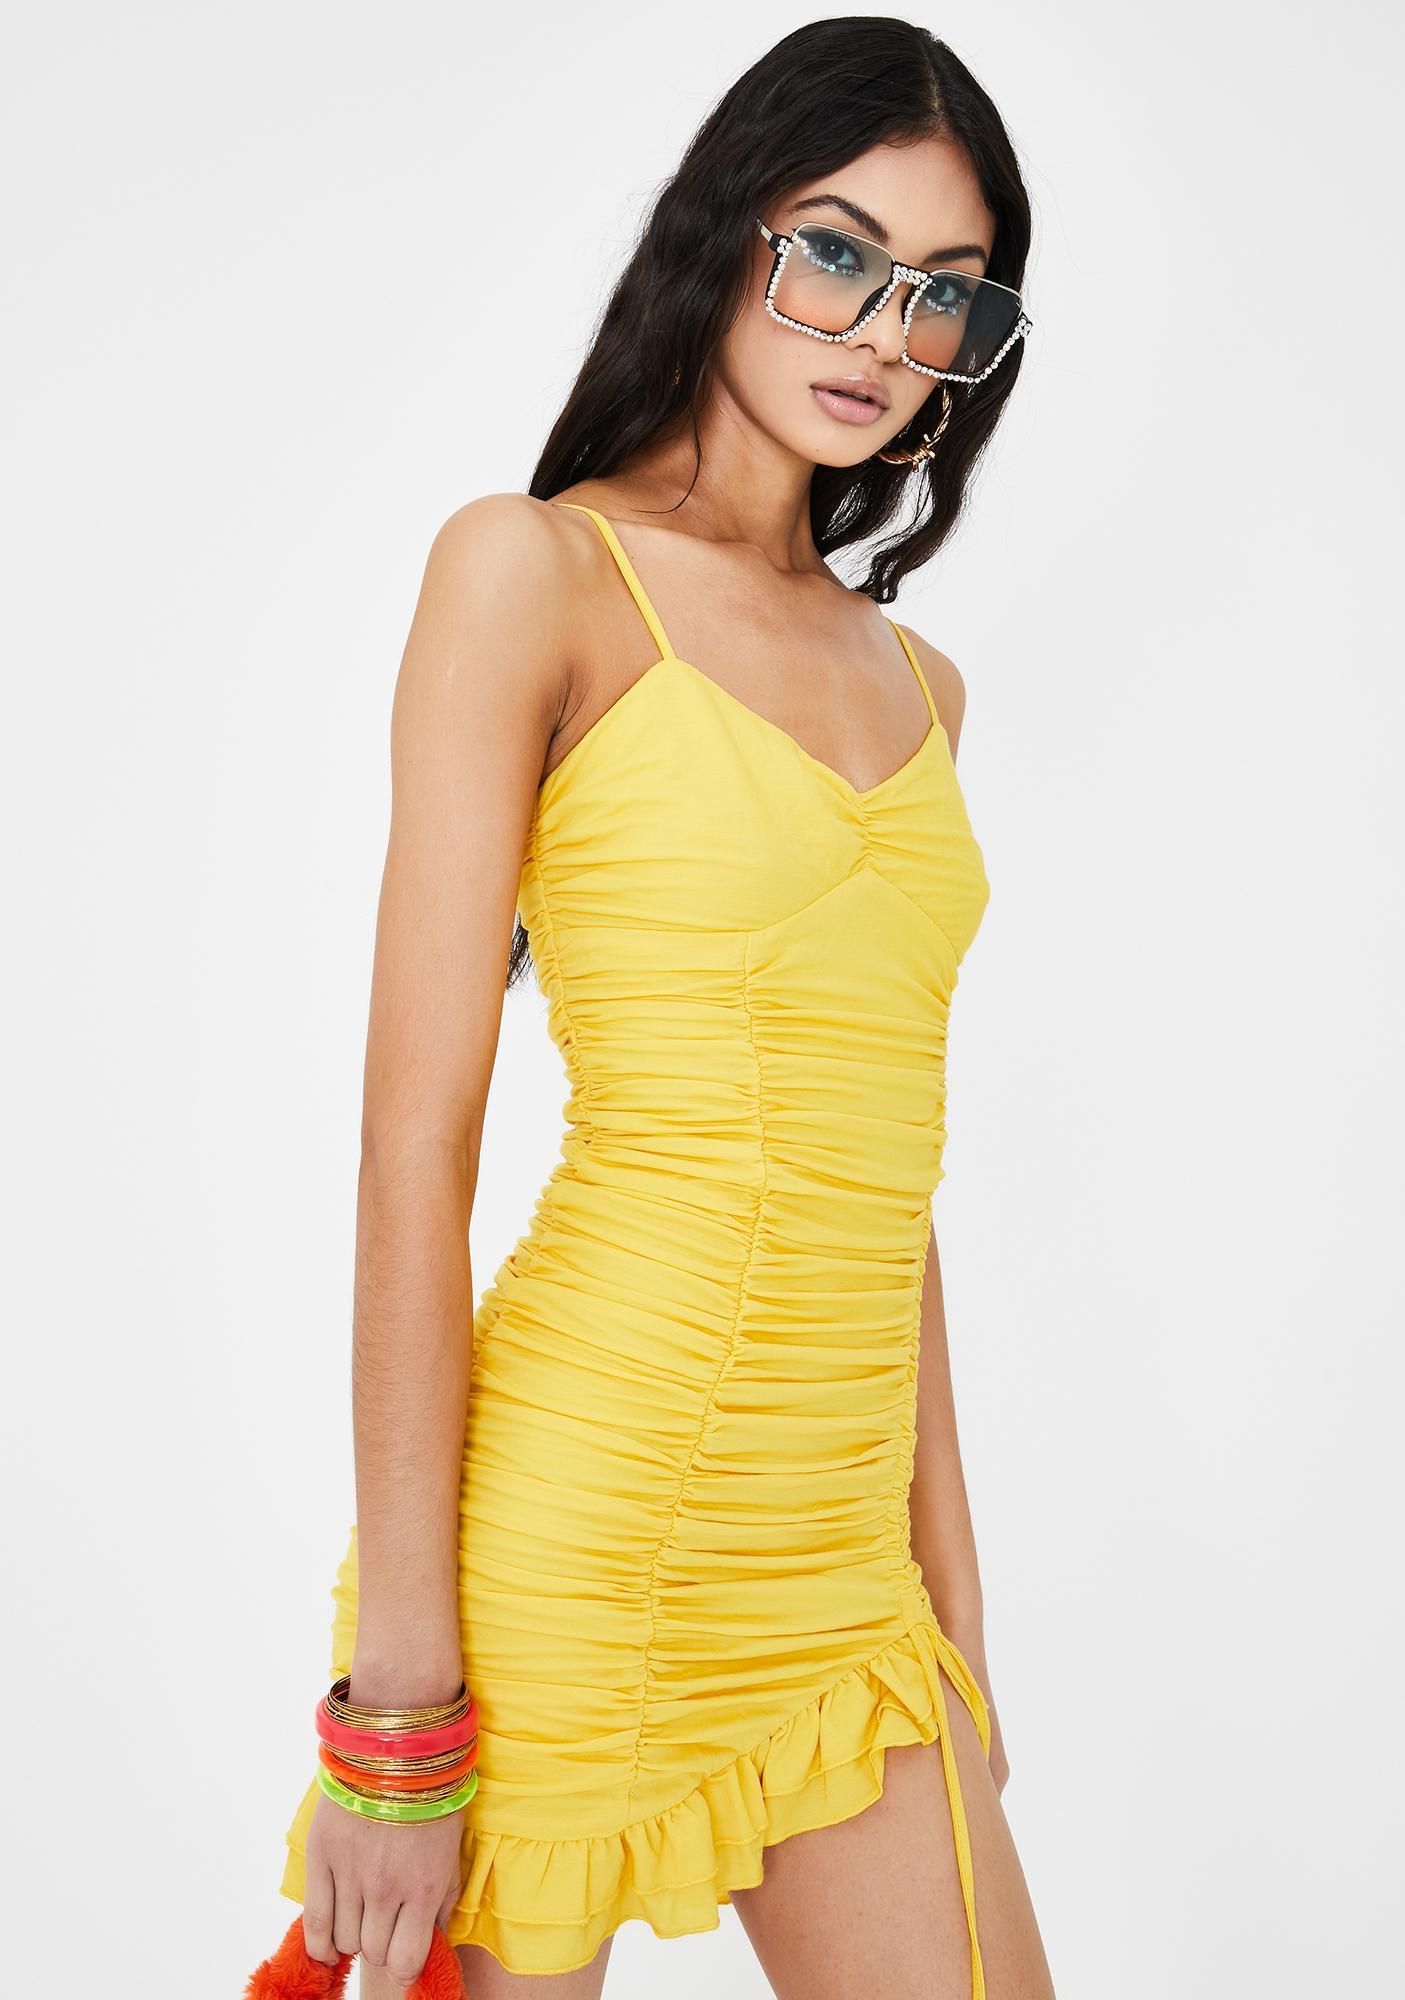 Tiger Mist Yellow Lucky Bodycon Dress